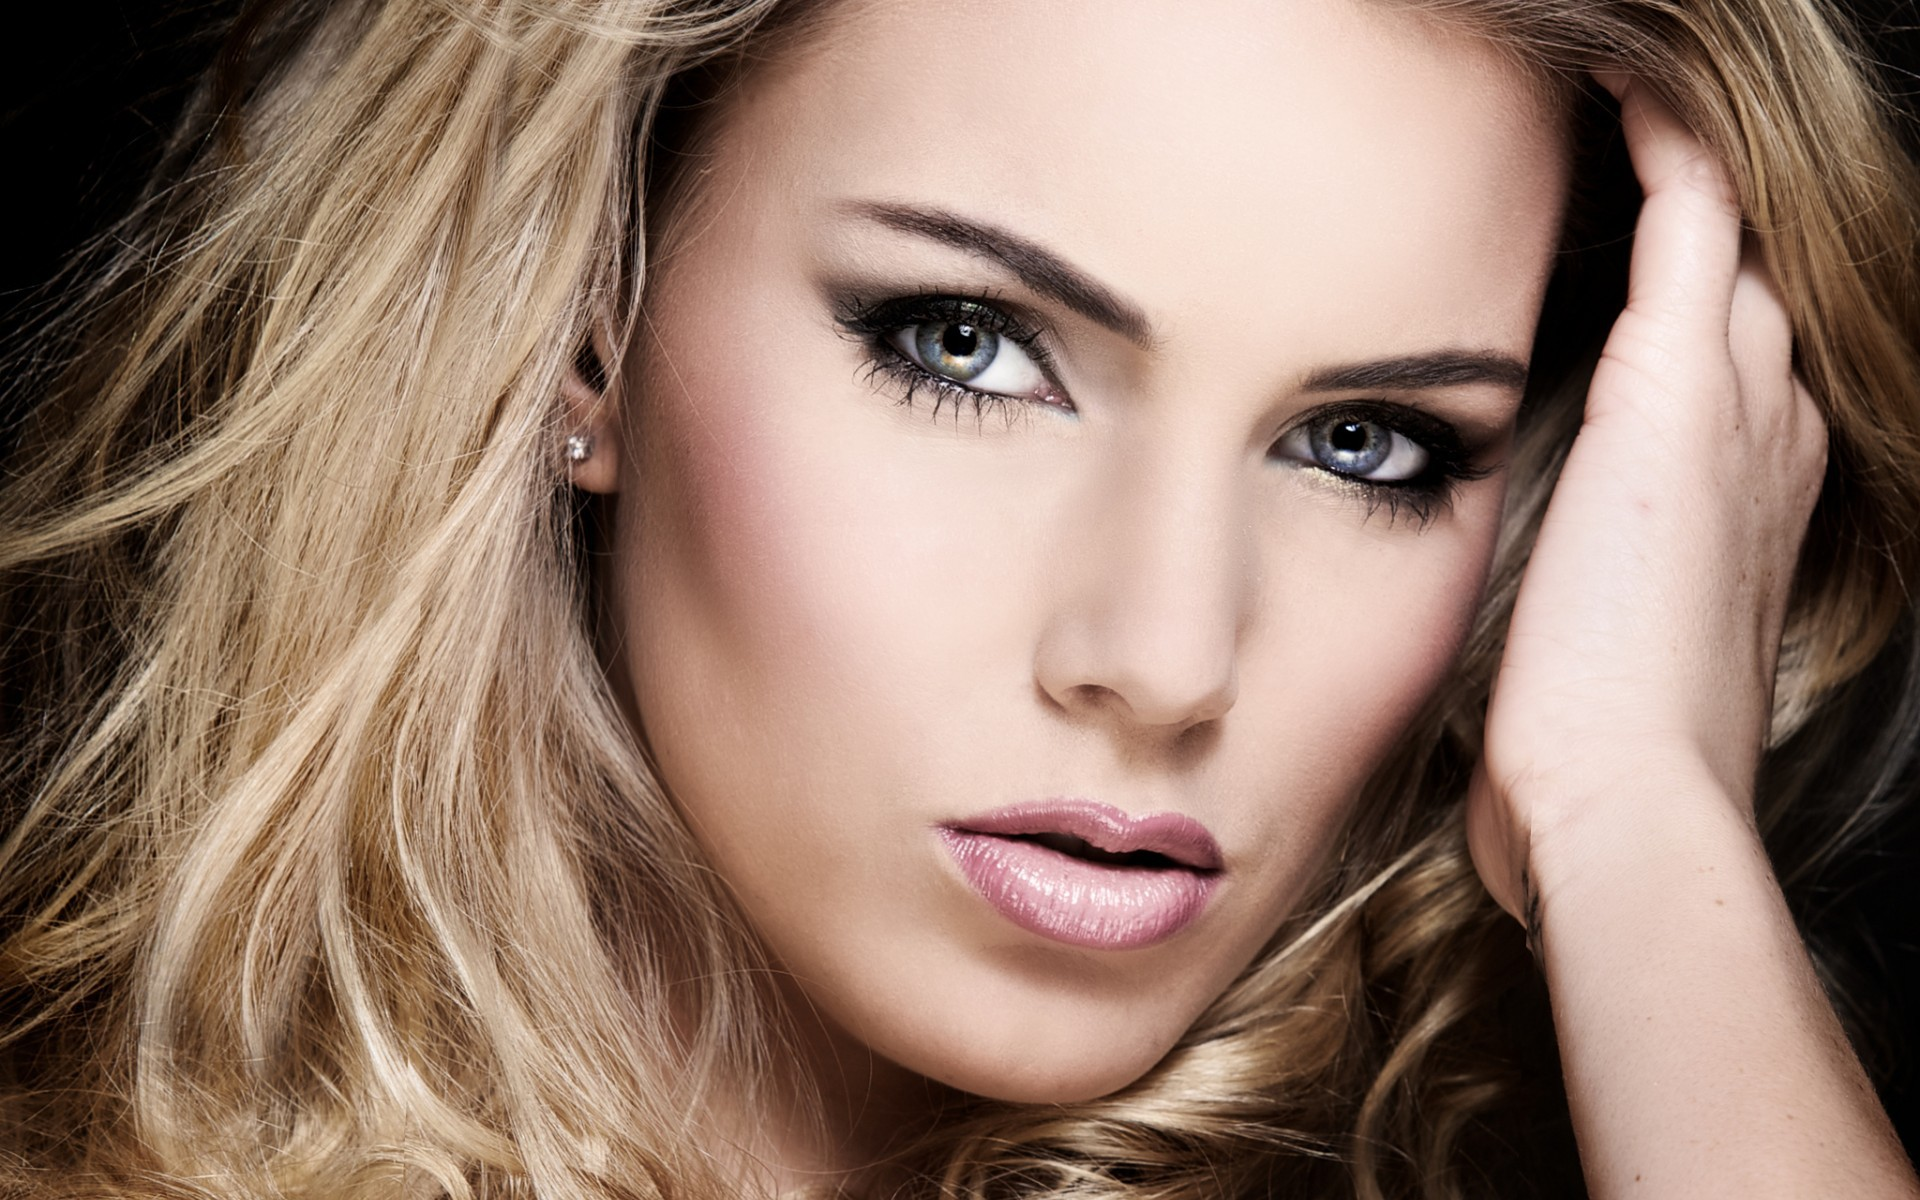 Beautiful Blondes Wallpapers Images Photos Pictures